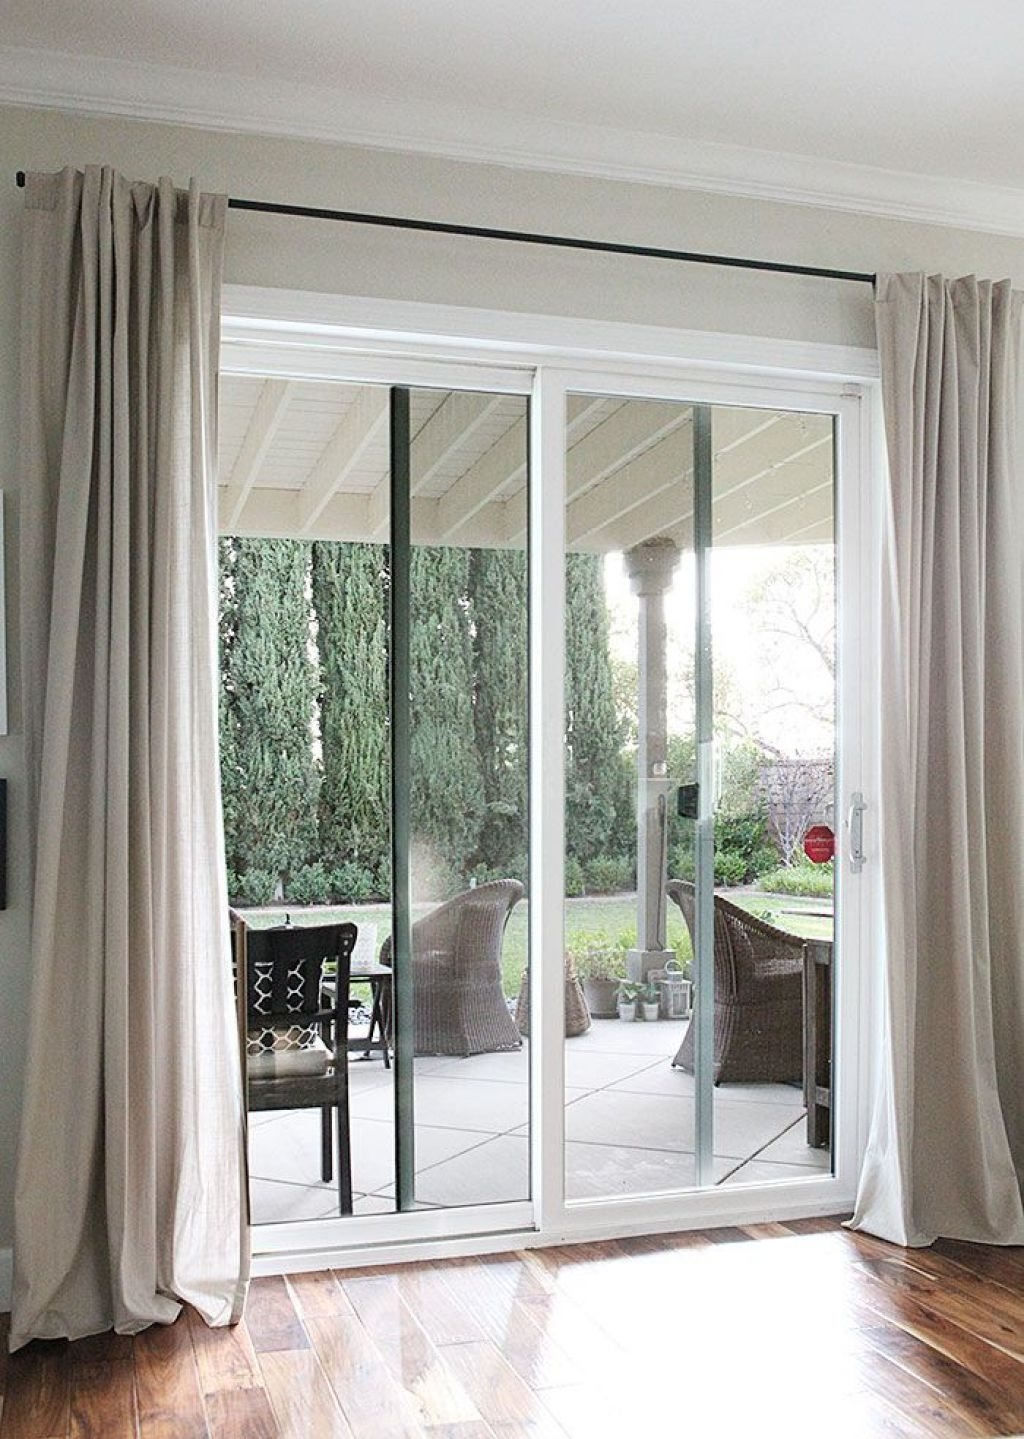 Sliding Door Covered With Extra Long Curtains Without Rods Fancy With Regard To Extra Long Door Curtain (Image 15 of 15)